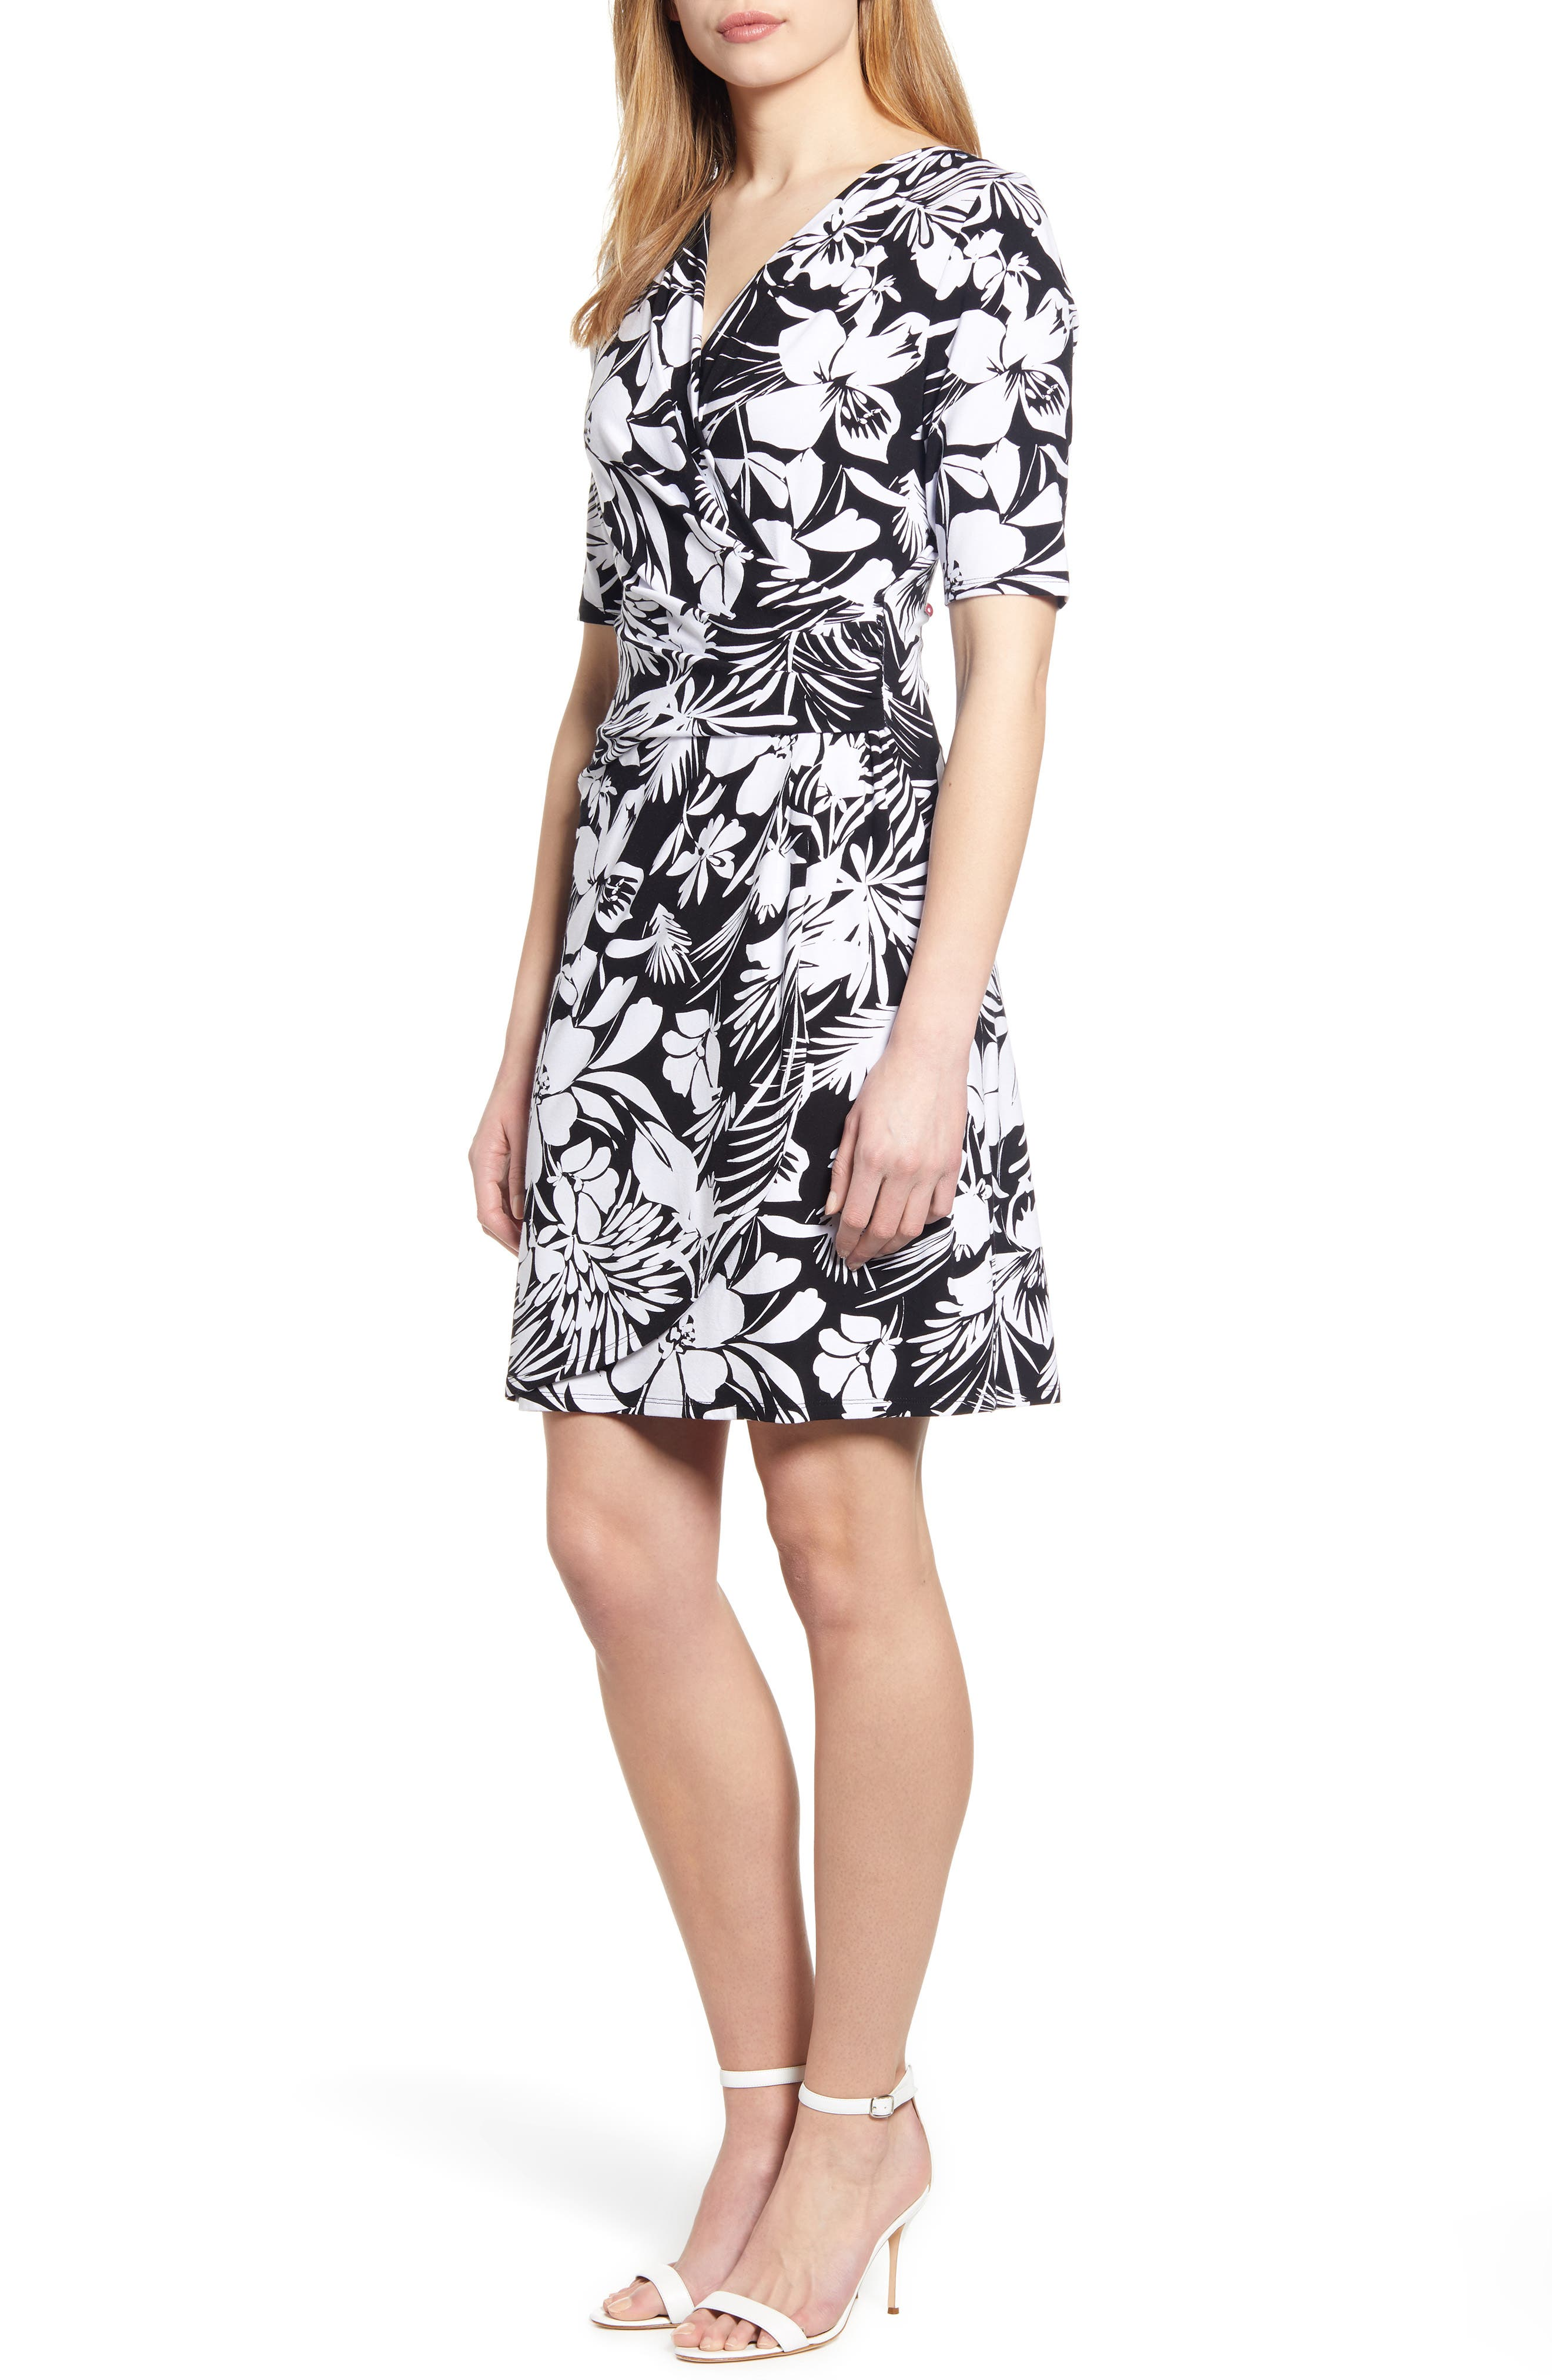 Tommy Bahama Buona Sera Wrap Dress, Black